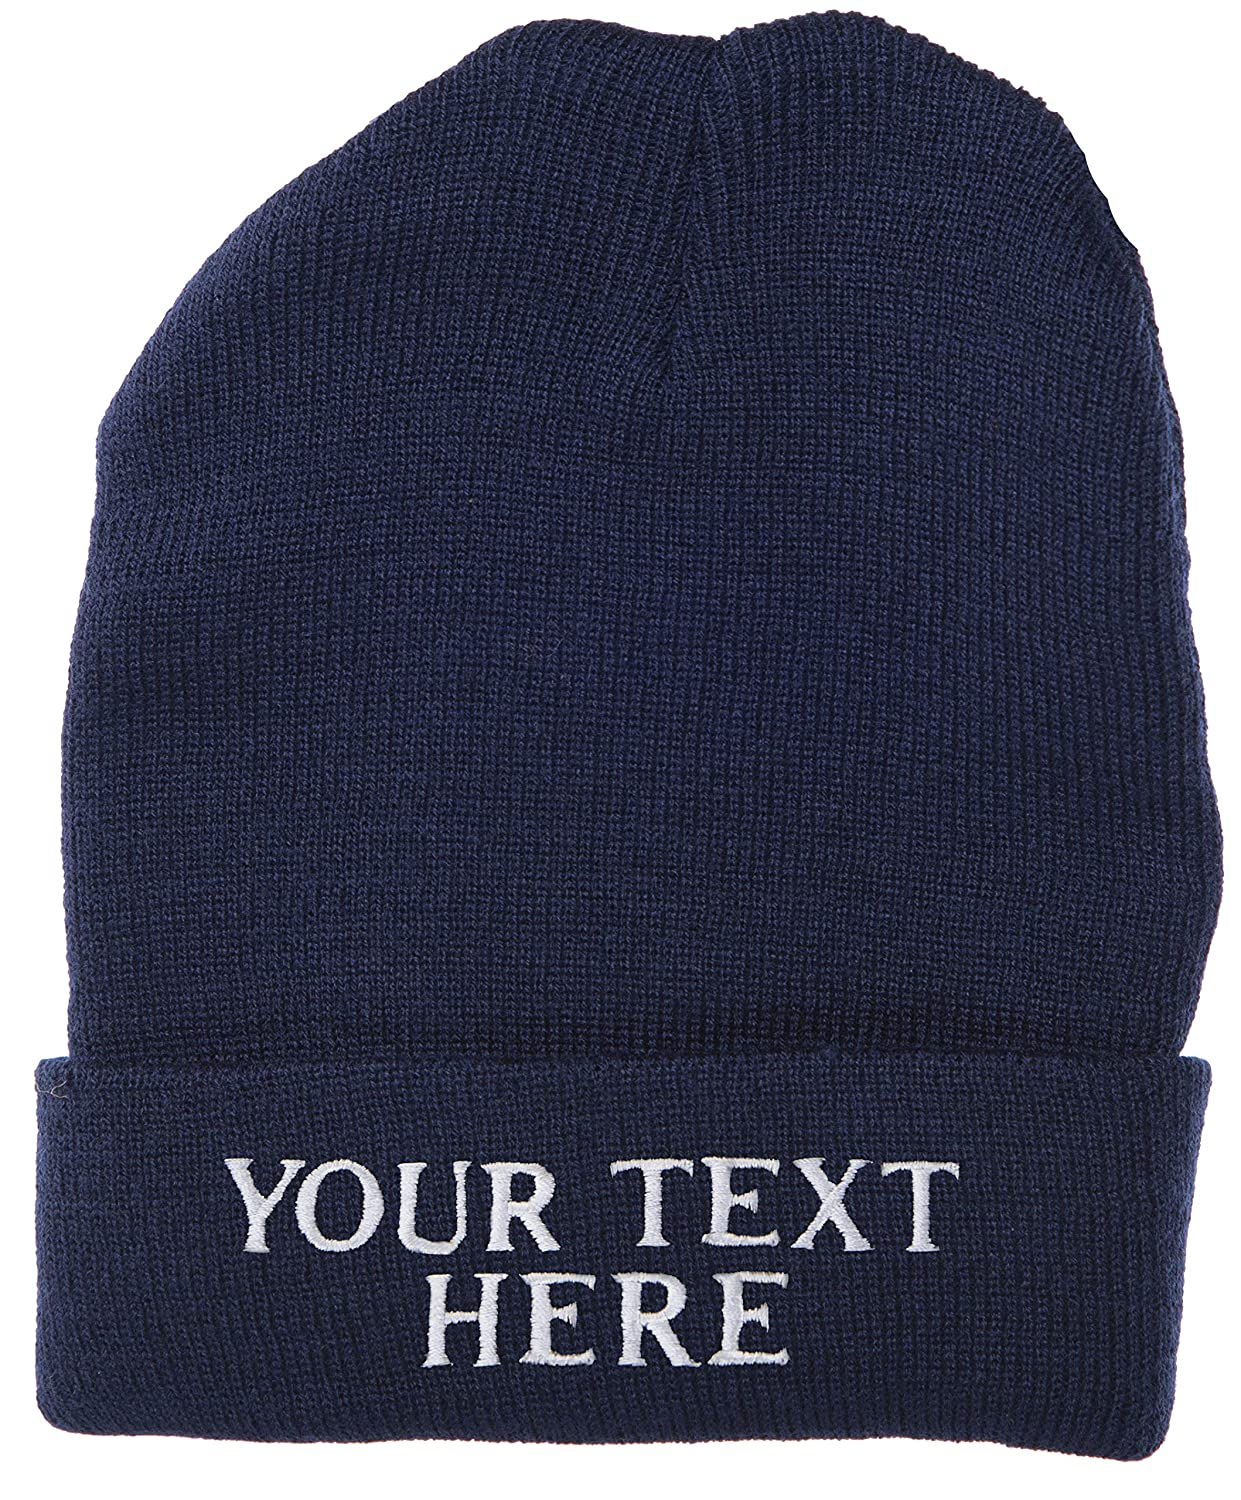 Personalized Wool Hats Wool Beanies Custom Embroidered Hats